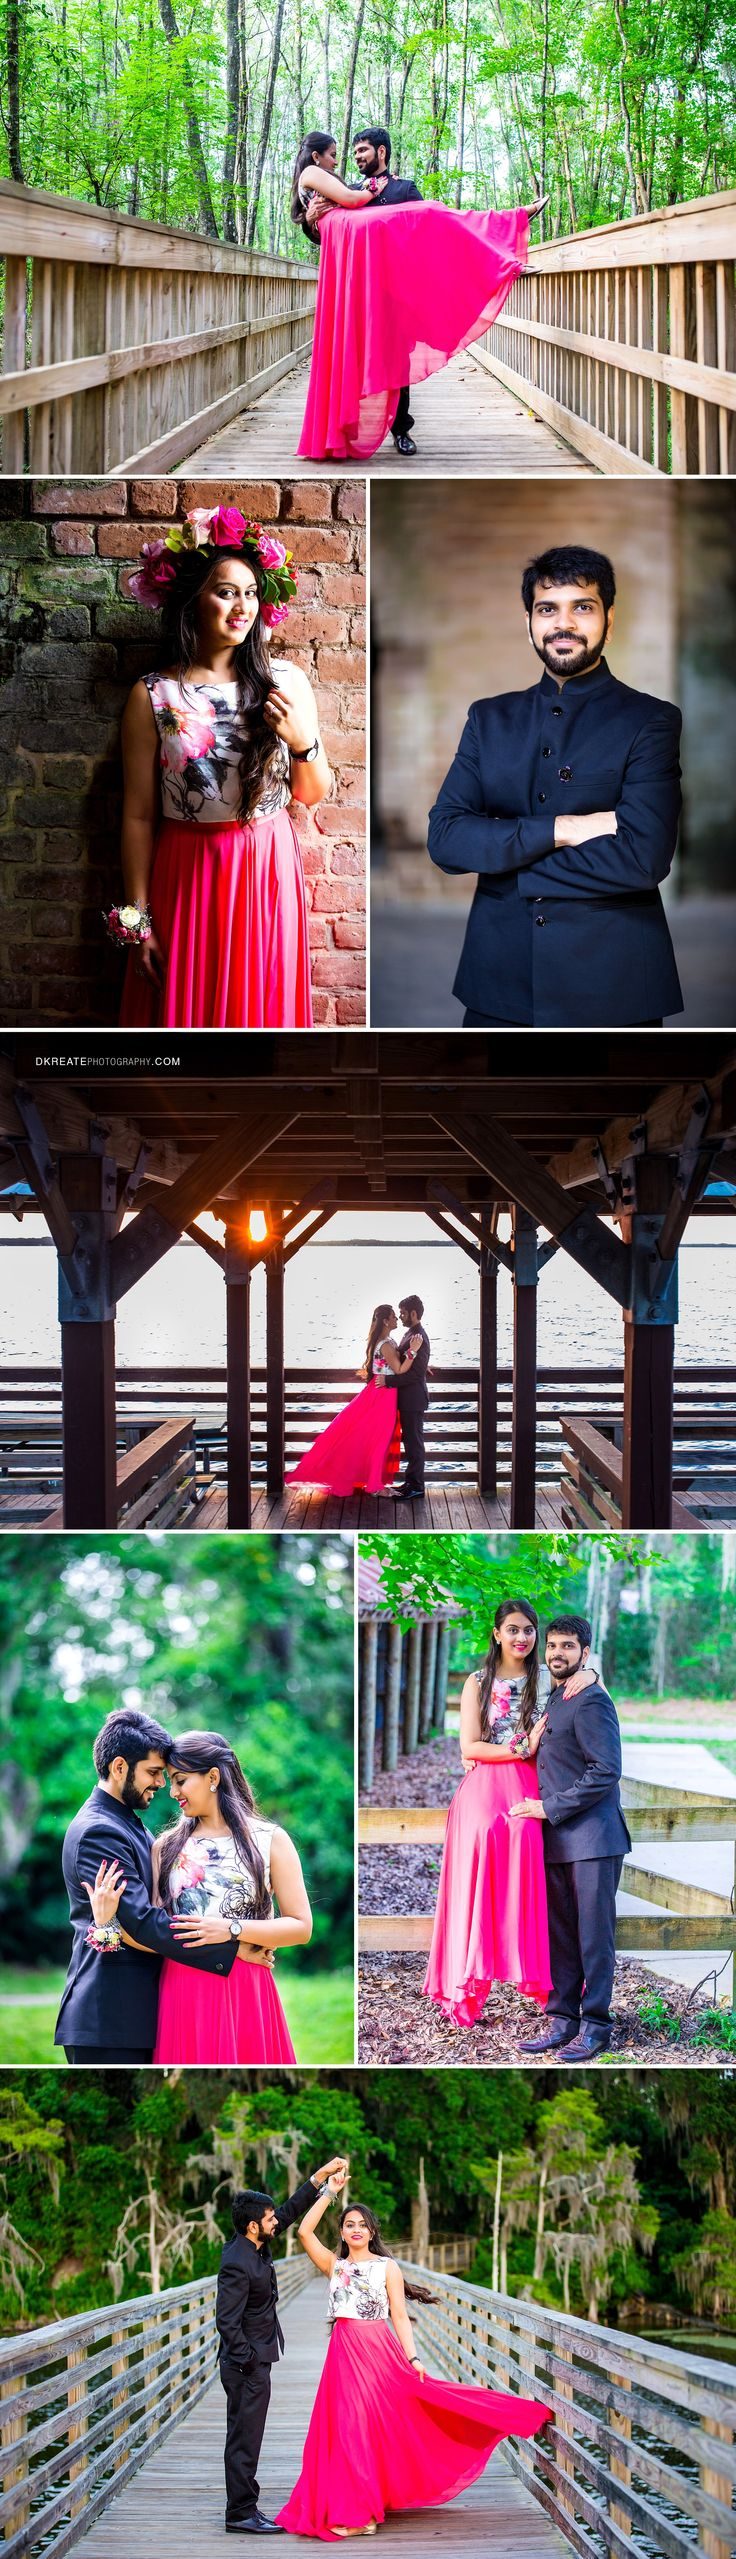 Indian Pre Wedding Photography Inspiration | Cute, vibrant, colorful, fresh, couple pictures, pictures in the woods and pier | Fuschia Pink flowing skirt | Fresh Flower Headband | Engagement Photos Alpine Groove Park Jacksonville Florida |